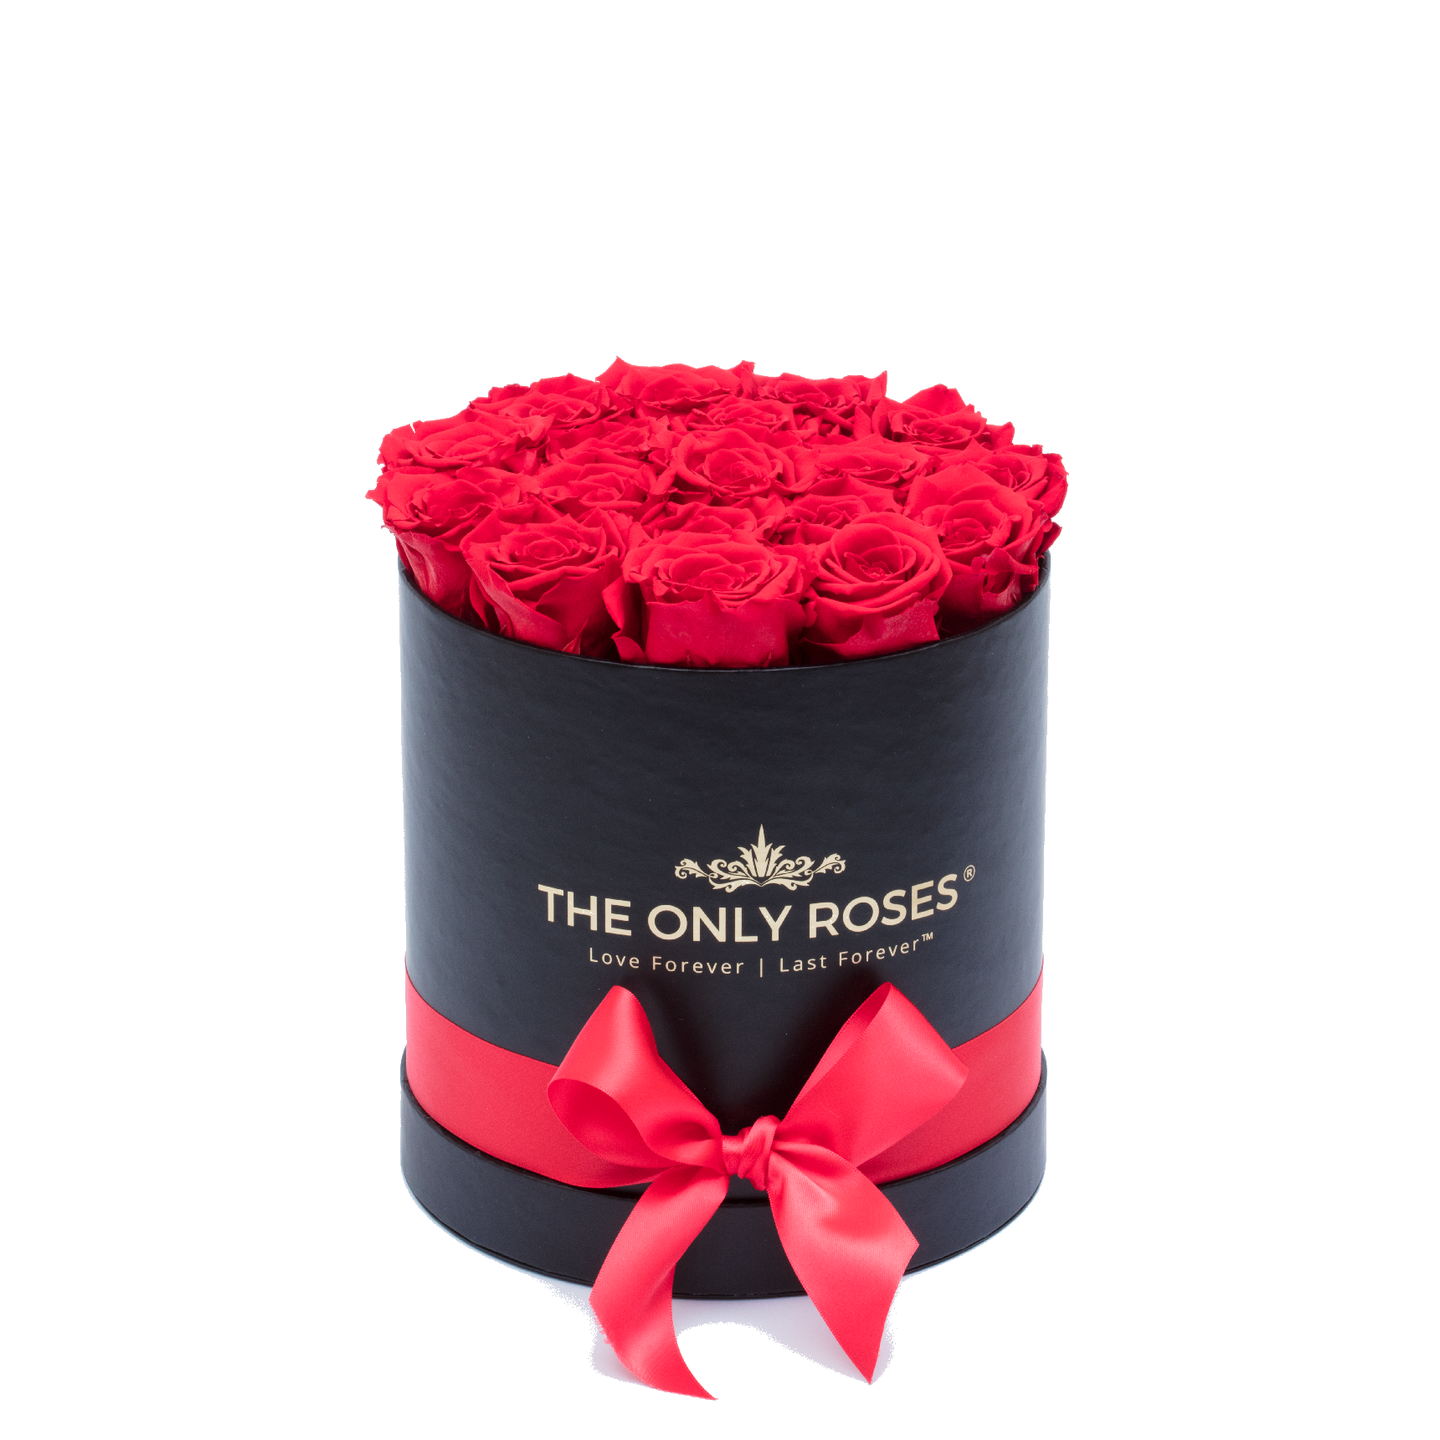 Red Preserved Roses | Small Round Black Huggy Rose Box - The Only Roses